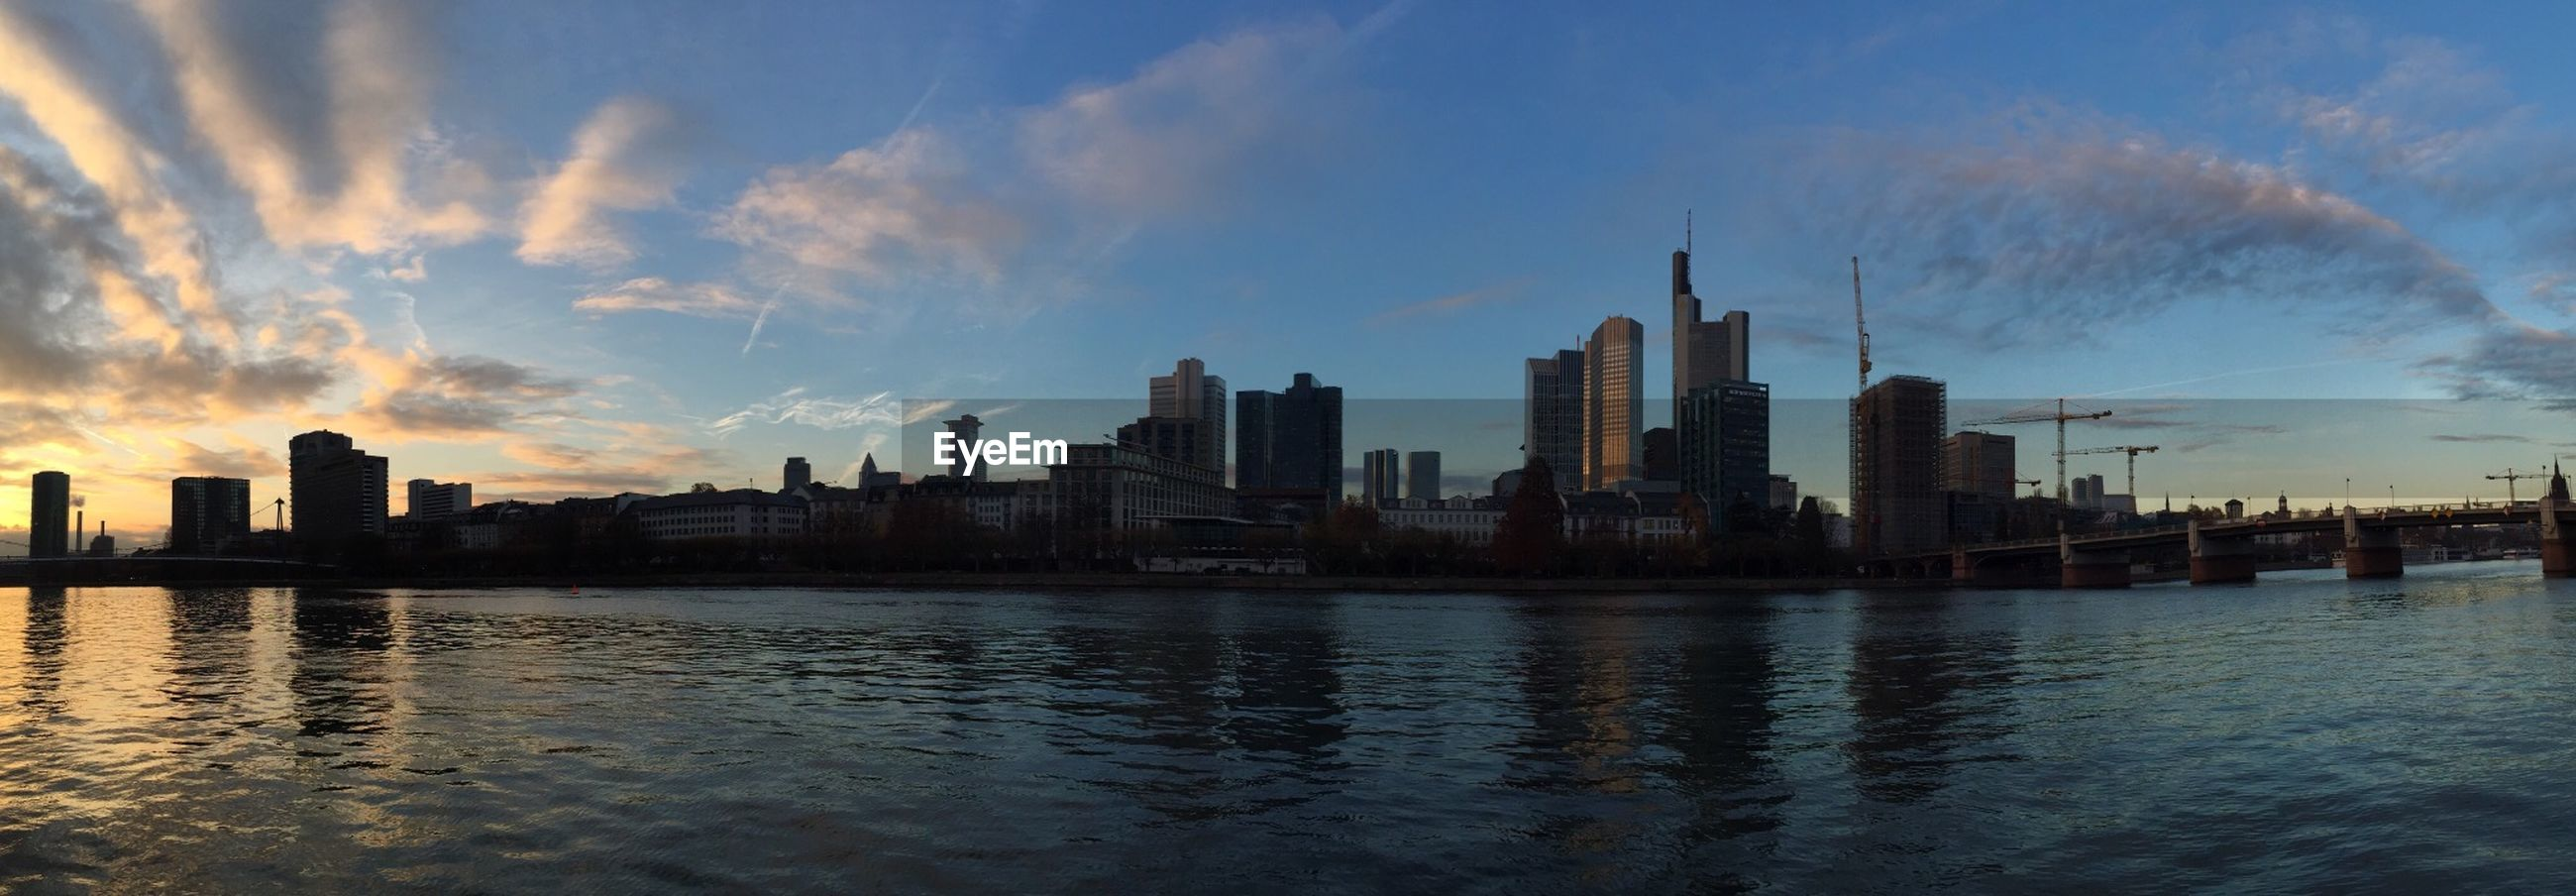 building exterior, architecture, city, built structure, water, skyscraper, sky, cityscape, waterfront, urban skyline, river, sunset, reflection, skyline, cloud - sky, modern, cloud, office building, tall - high, tower